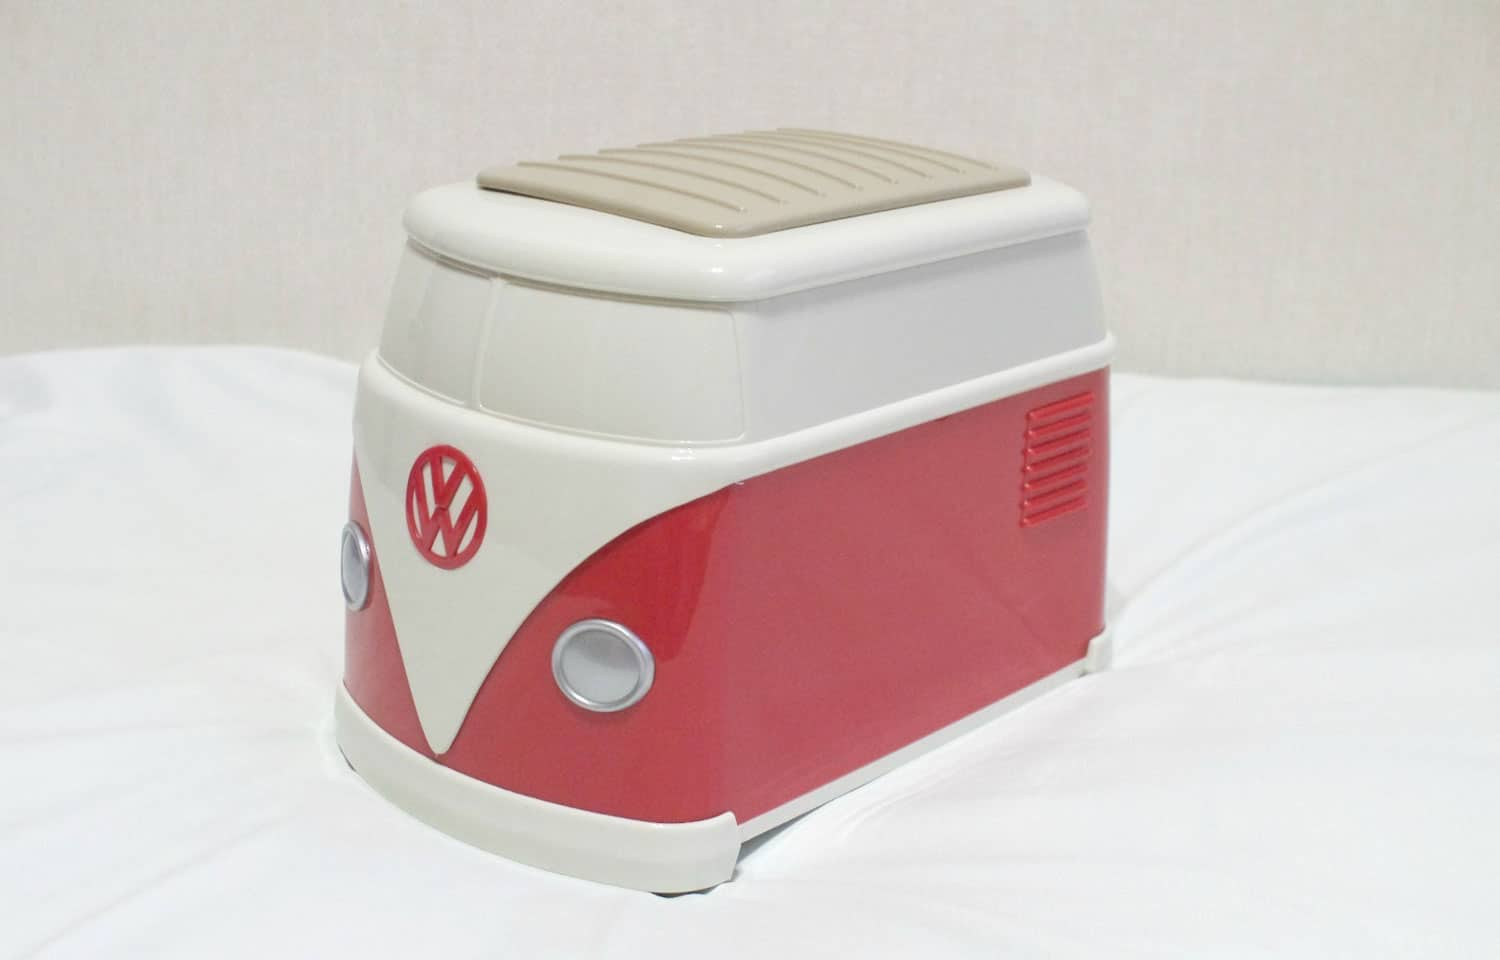 volkswagen-bus-toast-and-toaster